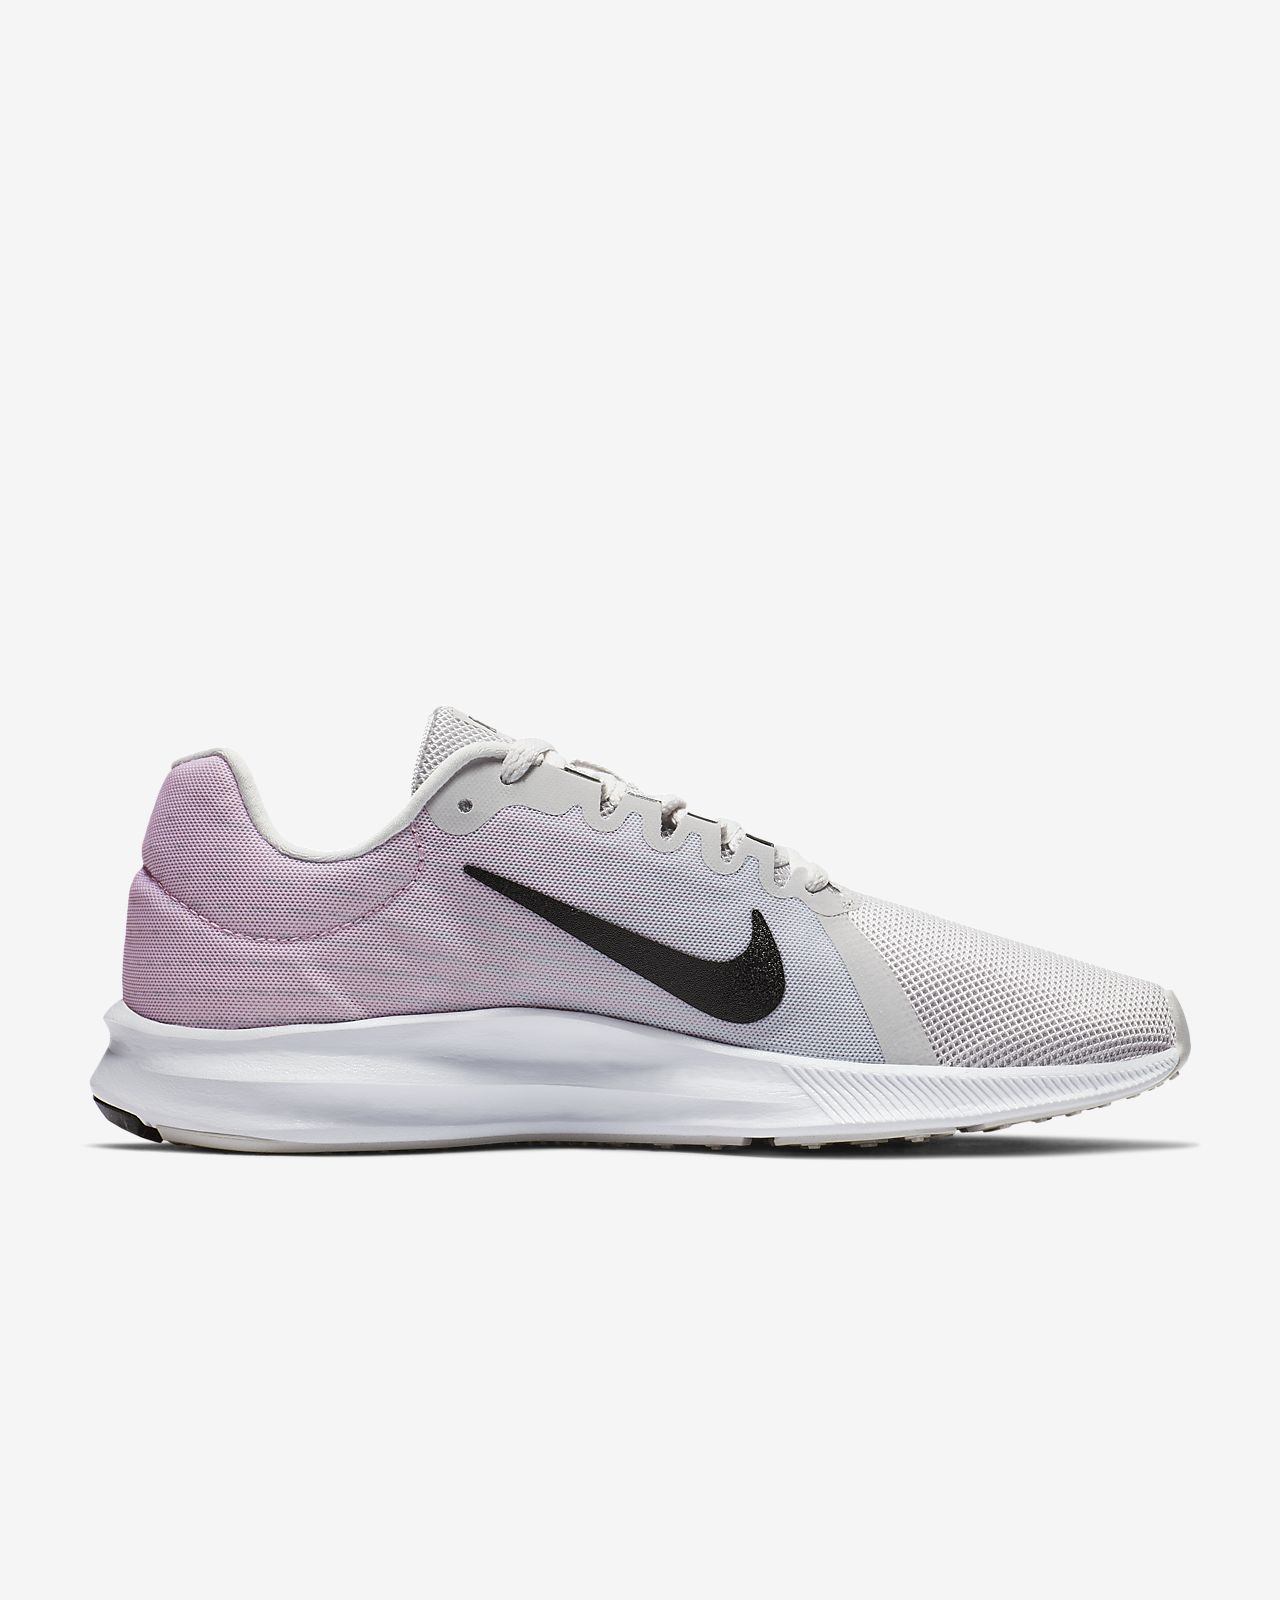 b972cd53774c4 Nike Downshifter 8 Women s Running Shoe. Nike.com AU